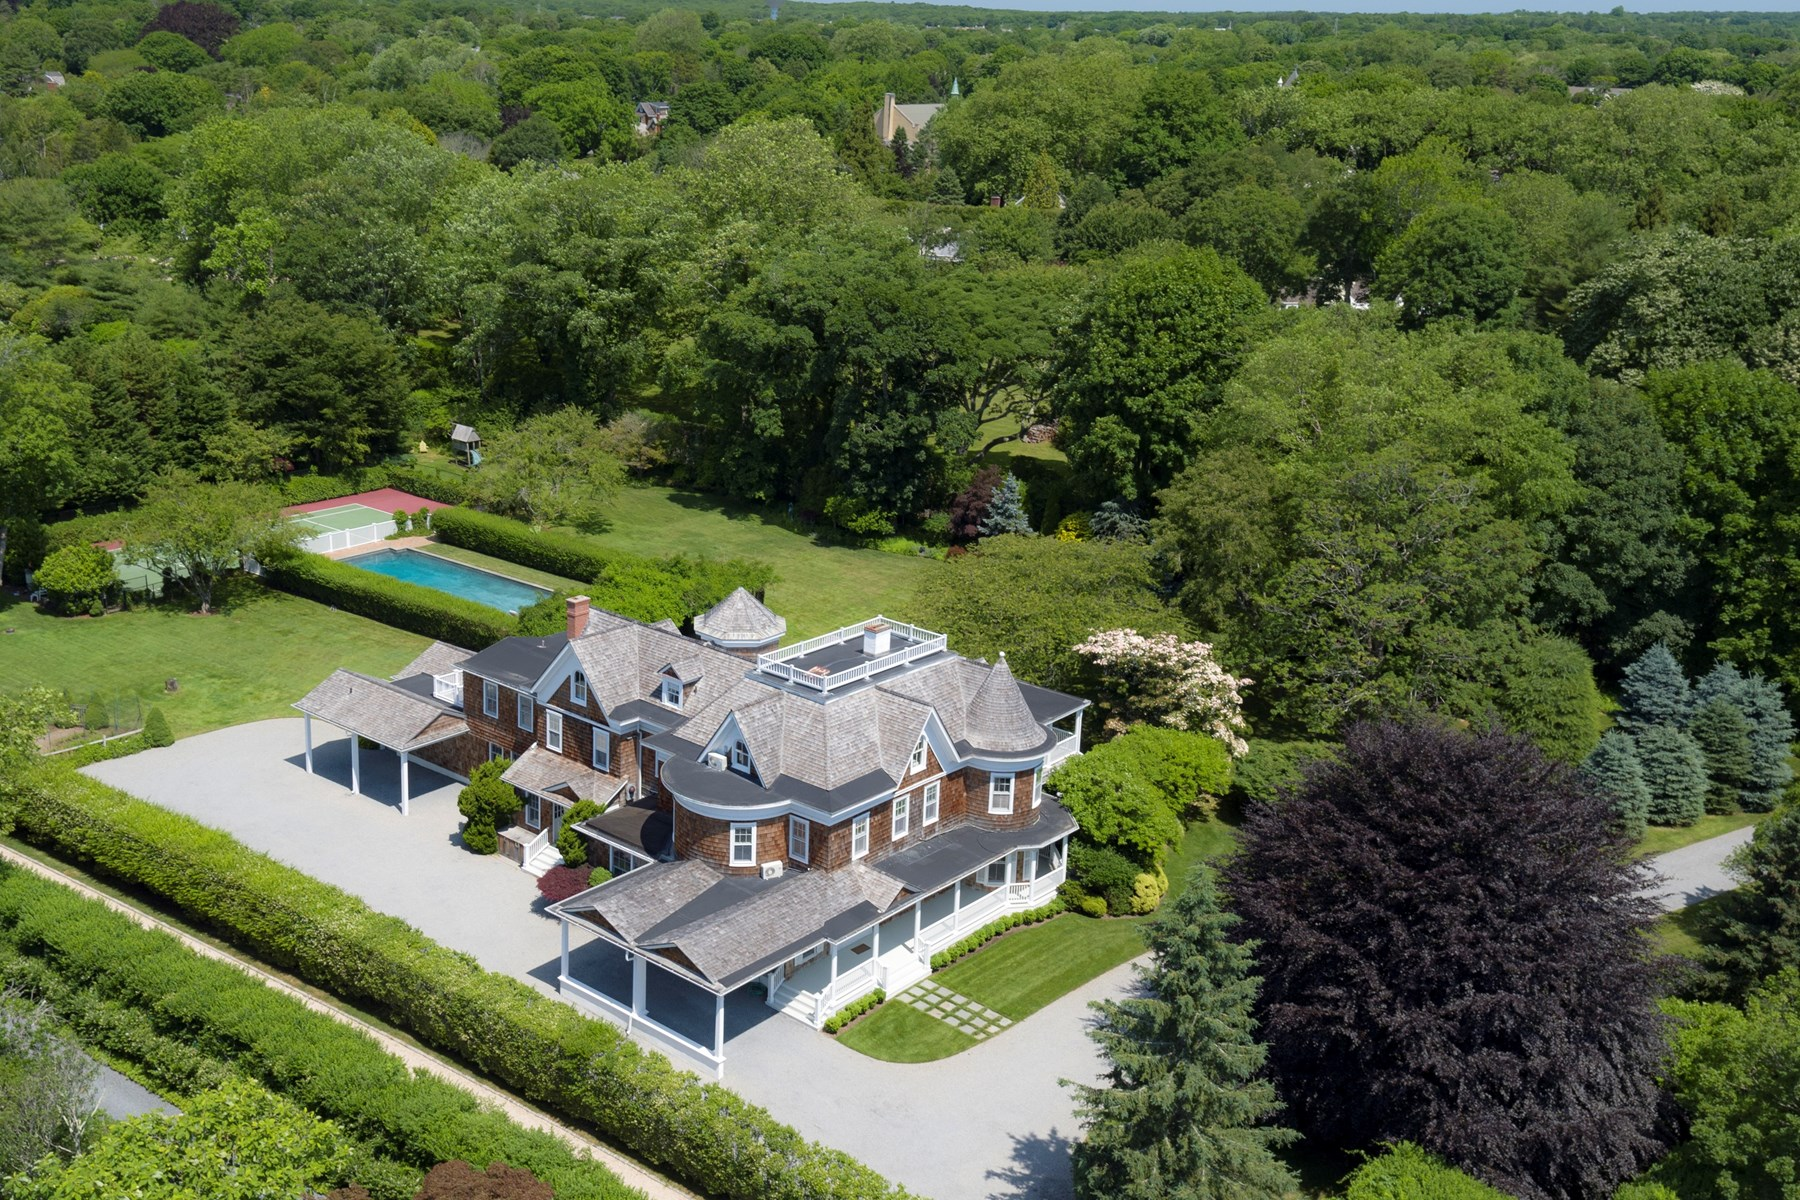 Single Family Home for Rent at Spectacular Southampton Estate 75 First Neck Lane Southampton, New York 11968 United States